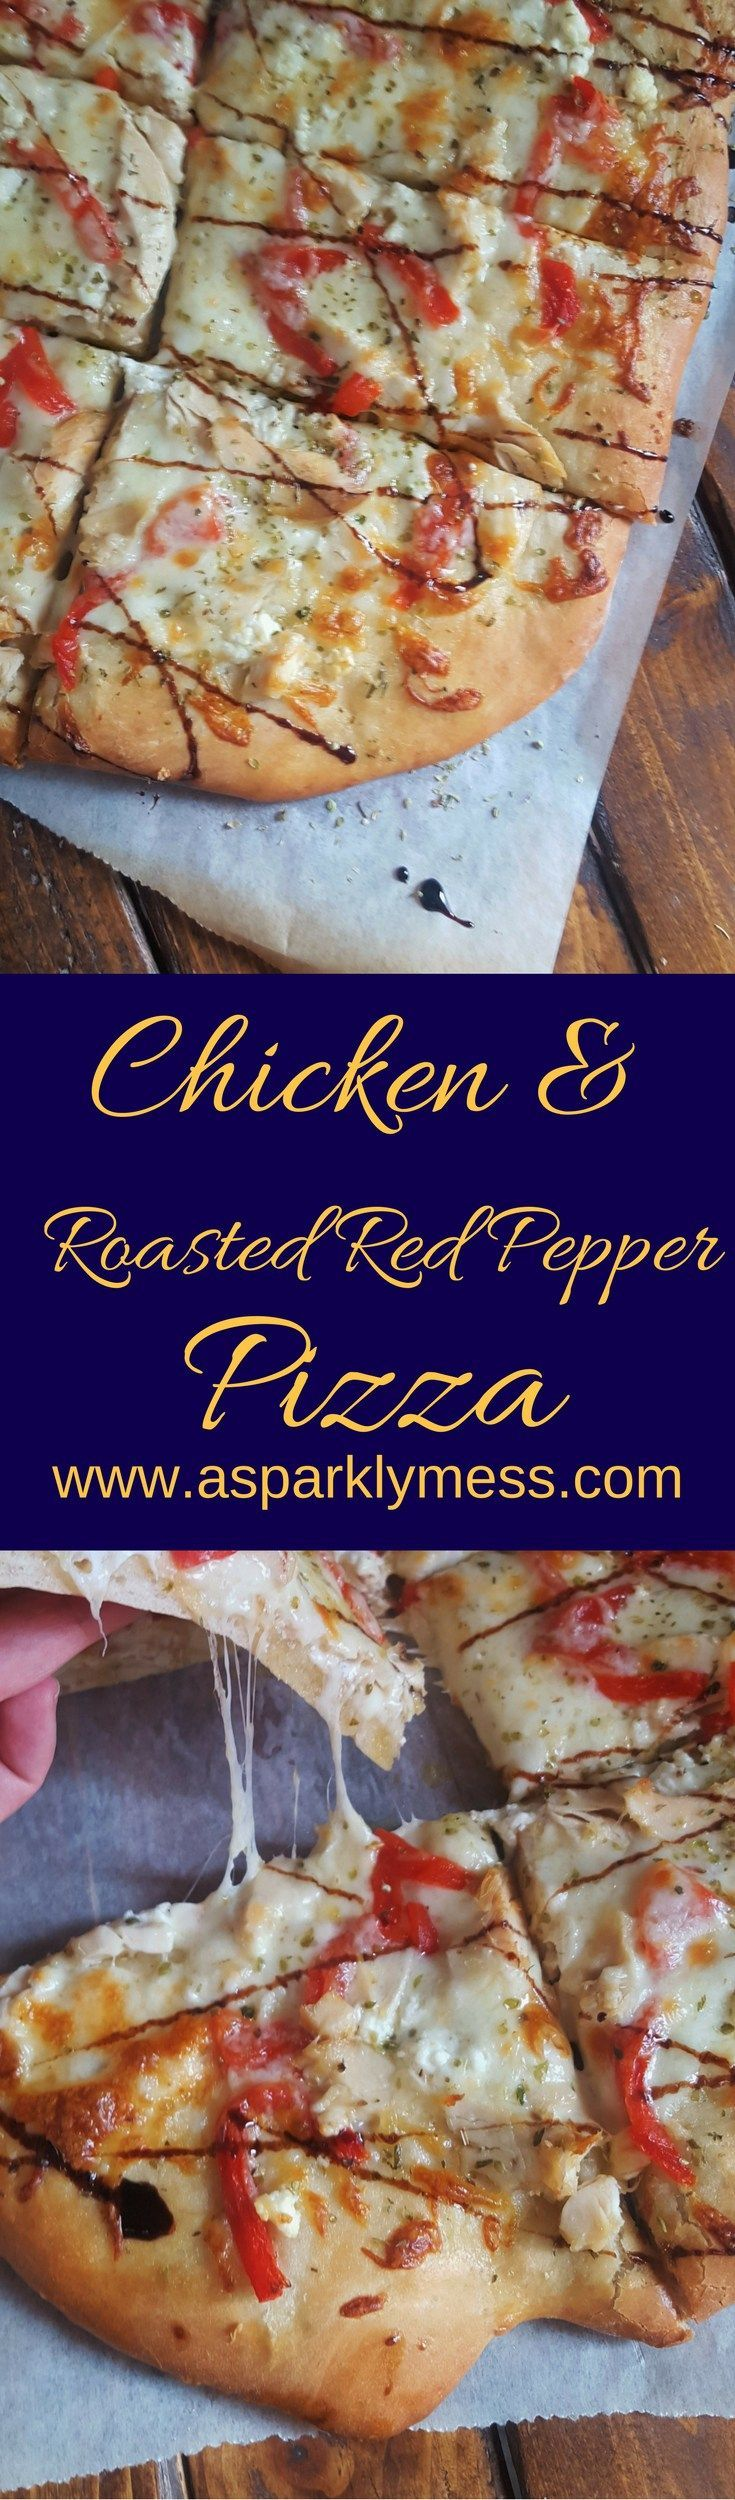 This Chicken & Roasted Red Pepper Pizza is a delicious option for pizza night! A flavorful garlic base and topped with melty cheesy greatness.